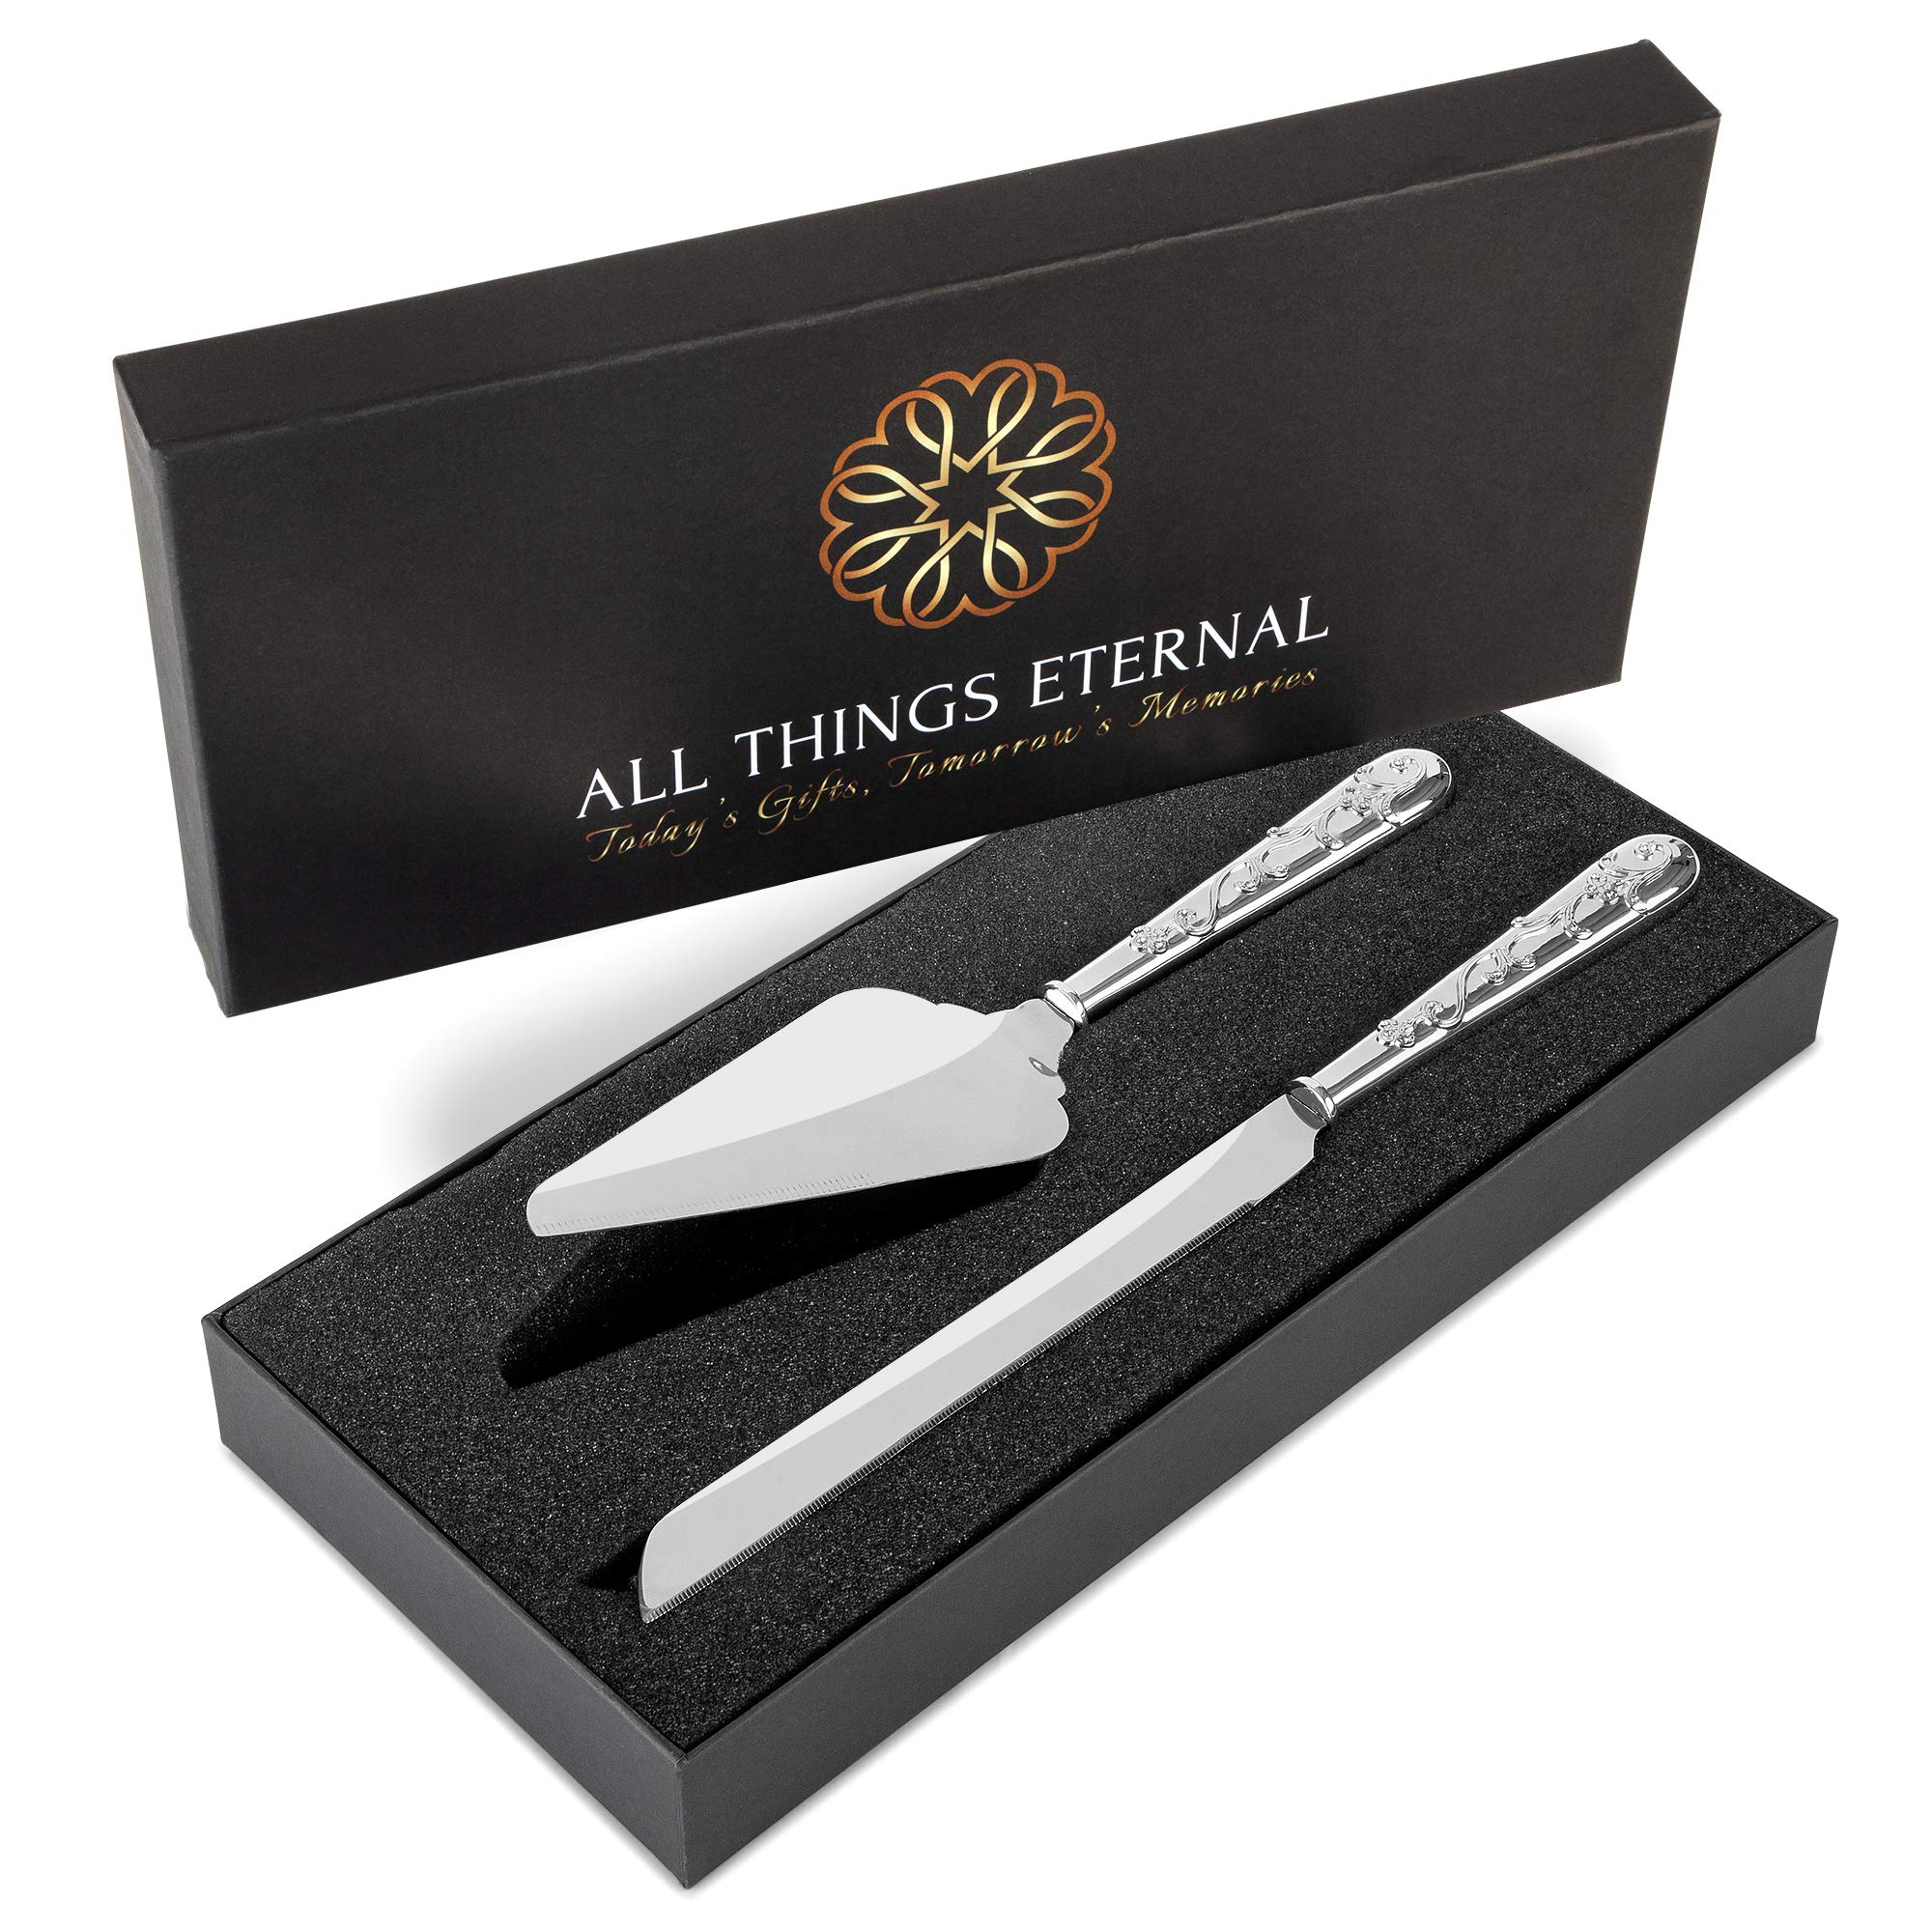 Wedding Cake Knife and Server Set, Silver-Plated with Hand-Set Crystals - Decorative Cutting and Serving Utensils for Cakes, Pie - Wedding Accessories and Gifts for Bride and Groom by All Things Eternal